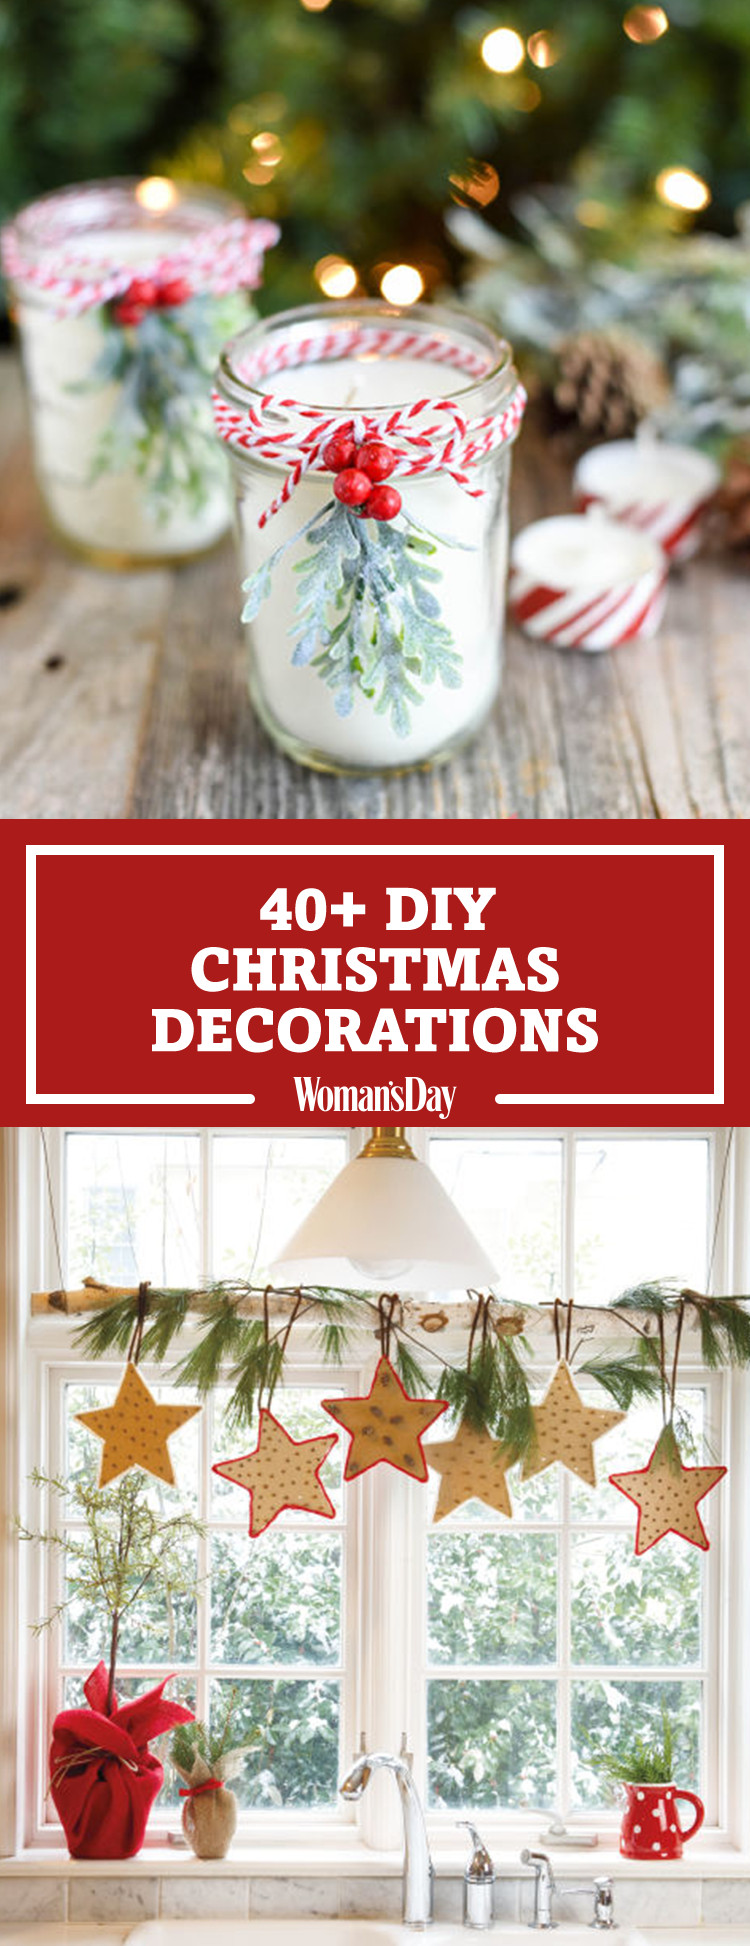 Best ideas about DIY Christmas Ideas . Save or Pin 47 Easy DIY Christmas Decorations Homemade Ideas for Now.